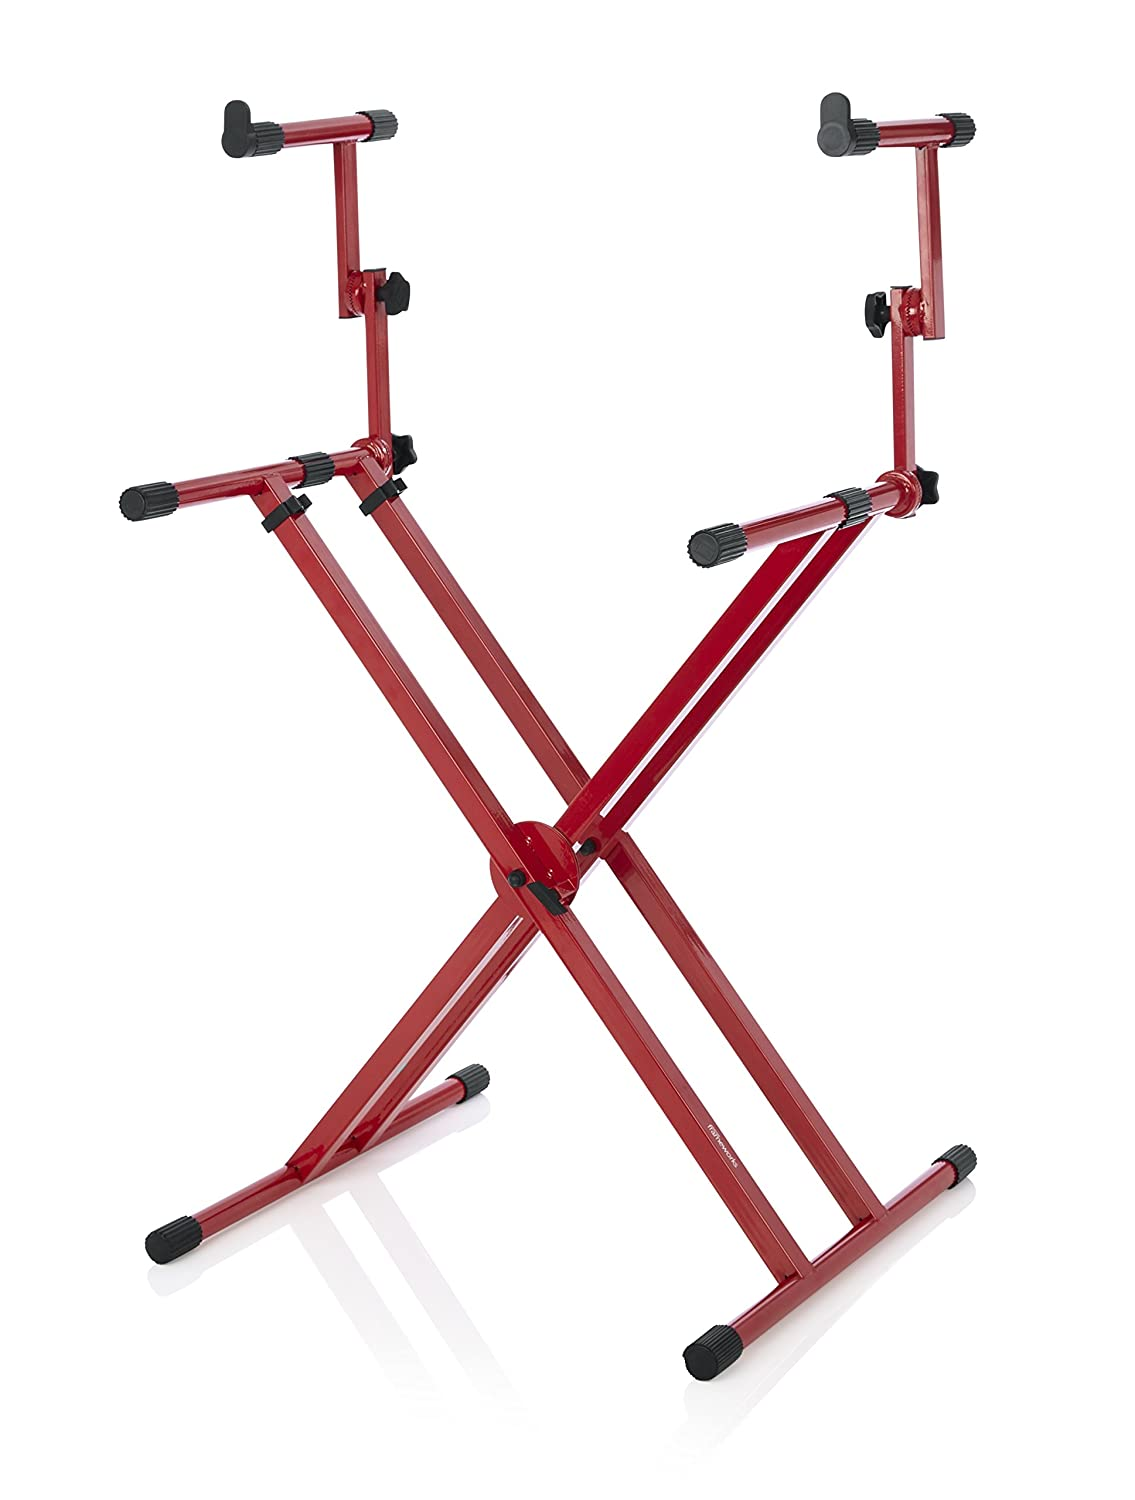 Gator Frameworks Deluxe Two Tier X Frame Keyboard Stand; Bright Red Finish (GFW-KEY-5100XRED) Gator Cases